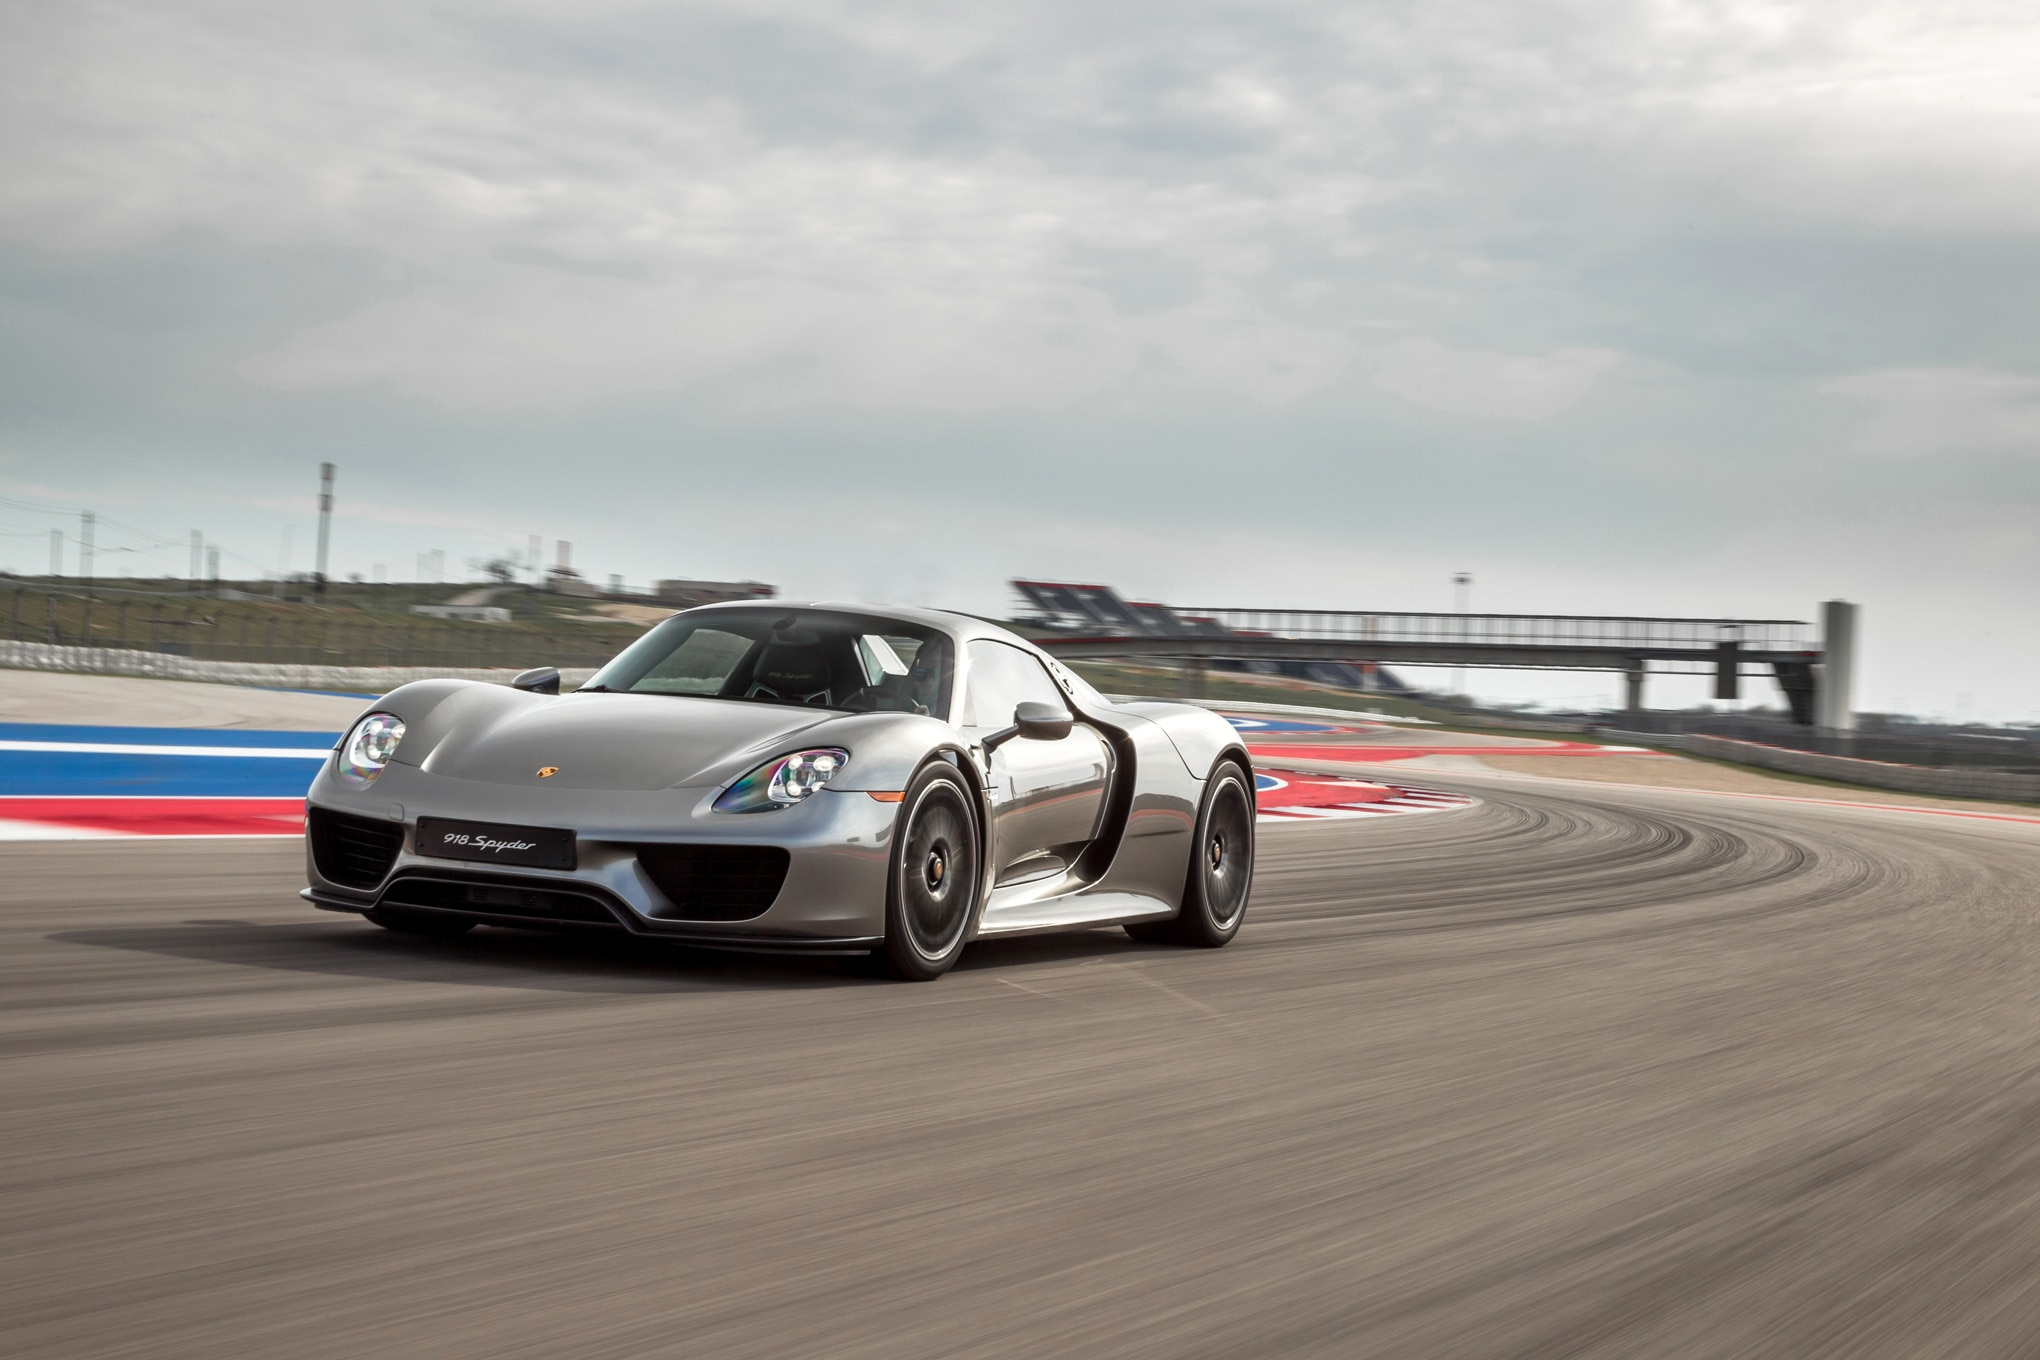 2015 porsche 918 spyder front three quarter in motion 02 - Porsche 918 Spyder 2015